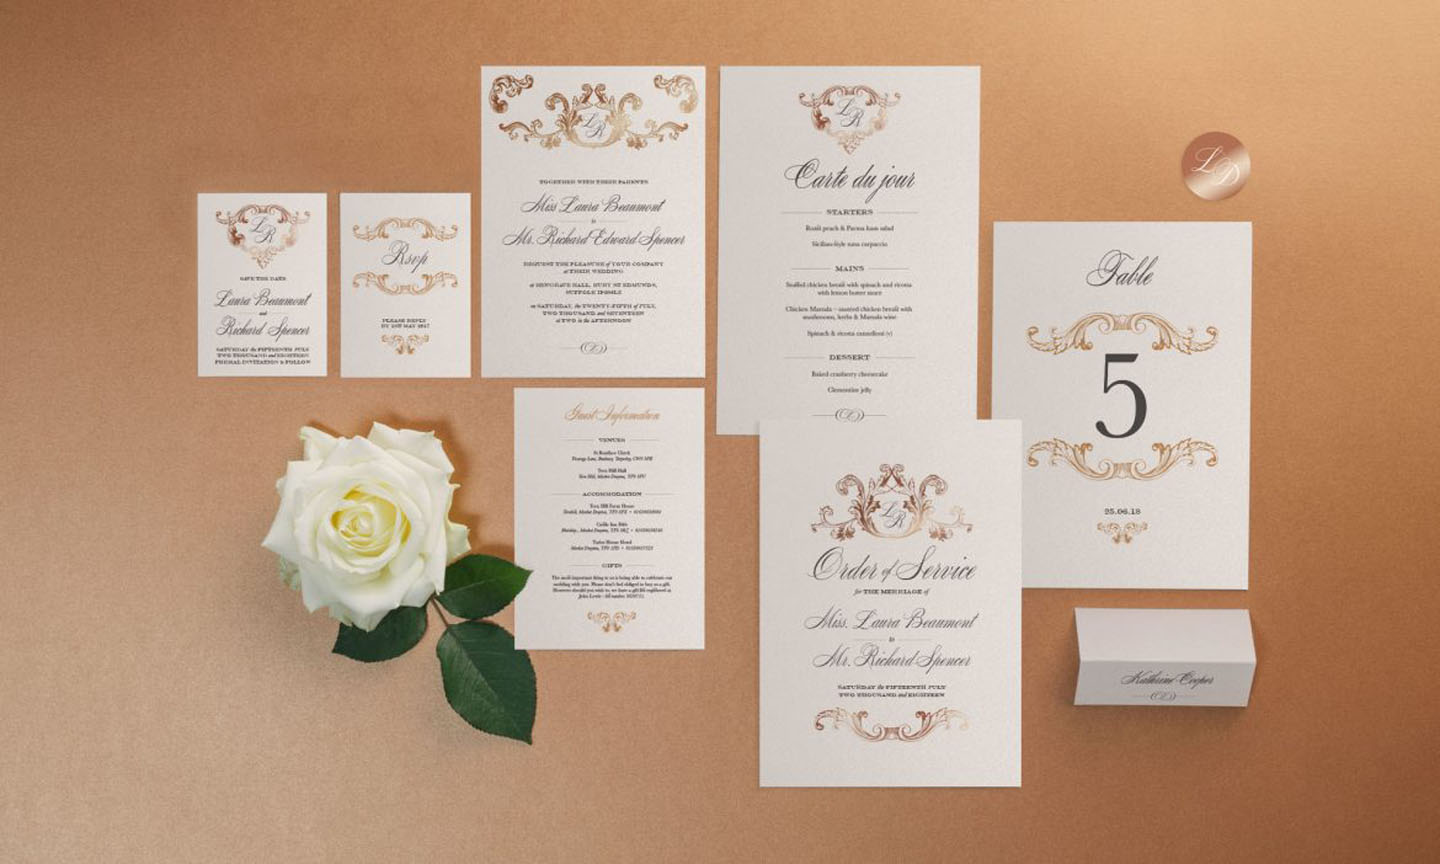 Elegant Wedding Stationery Set - The Beaumont Collection by The Foil Invite Company